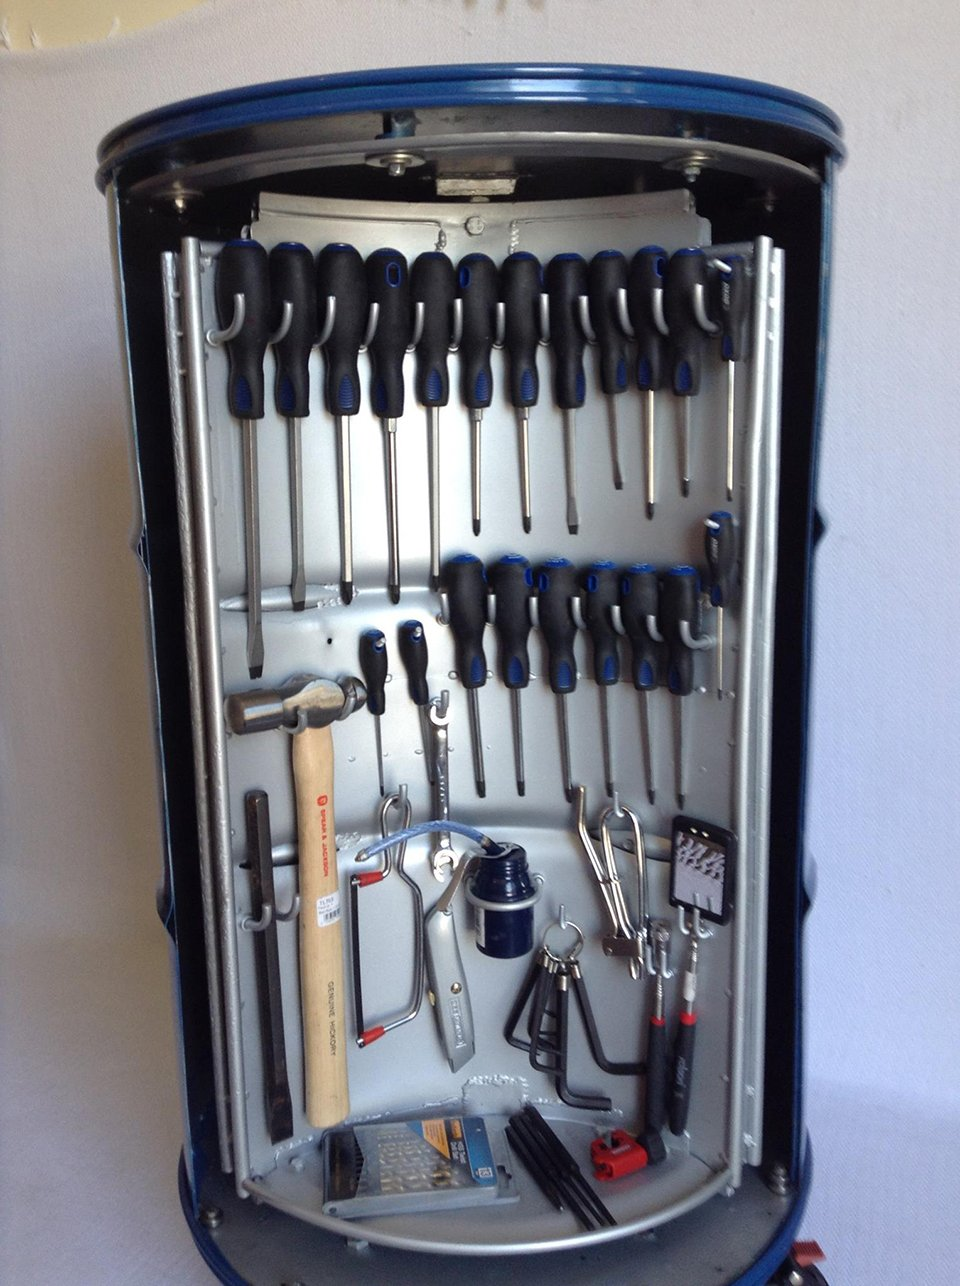 The Ultimate Toolbox